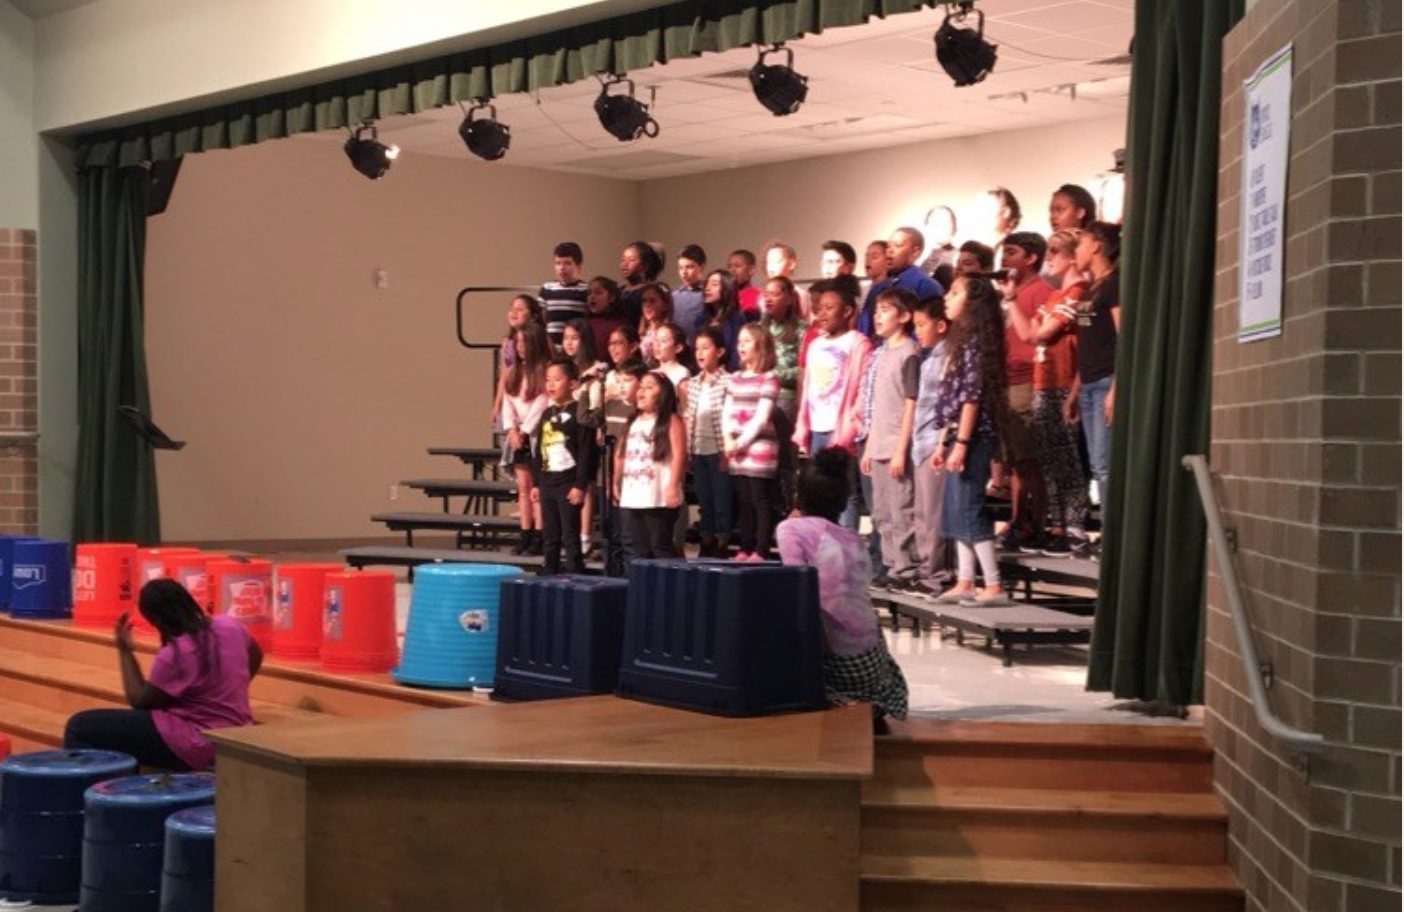 Bobcat Choir practicing for a performance